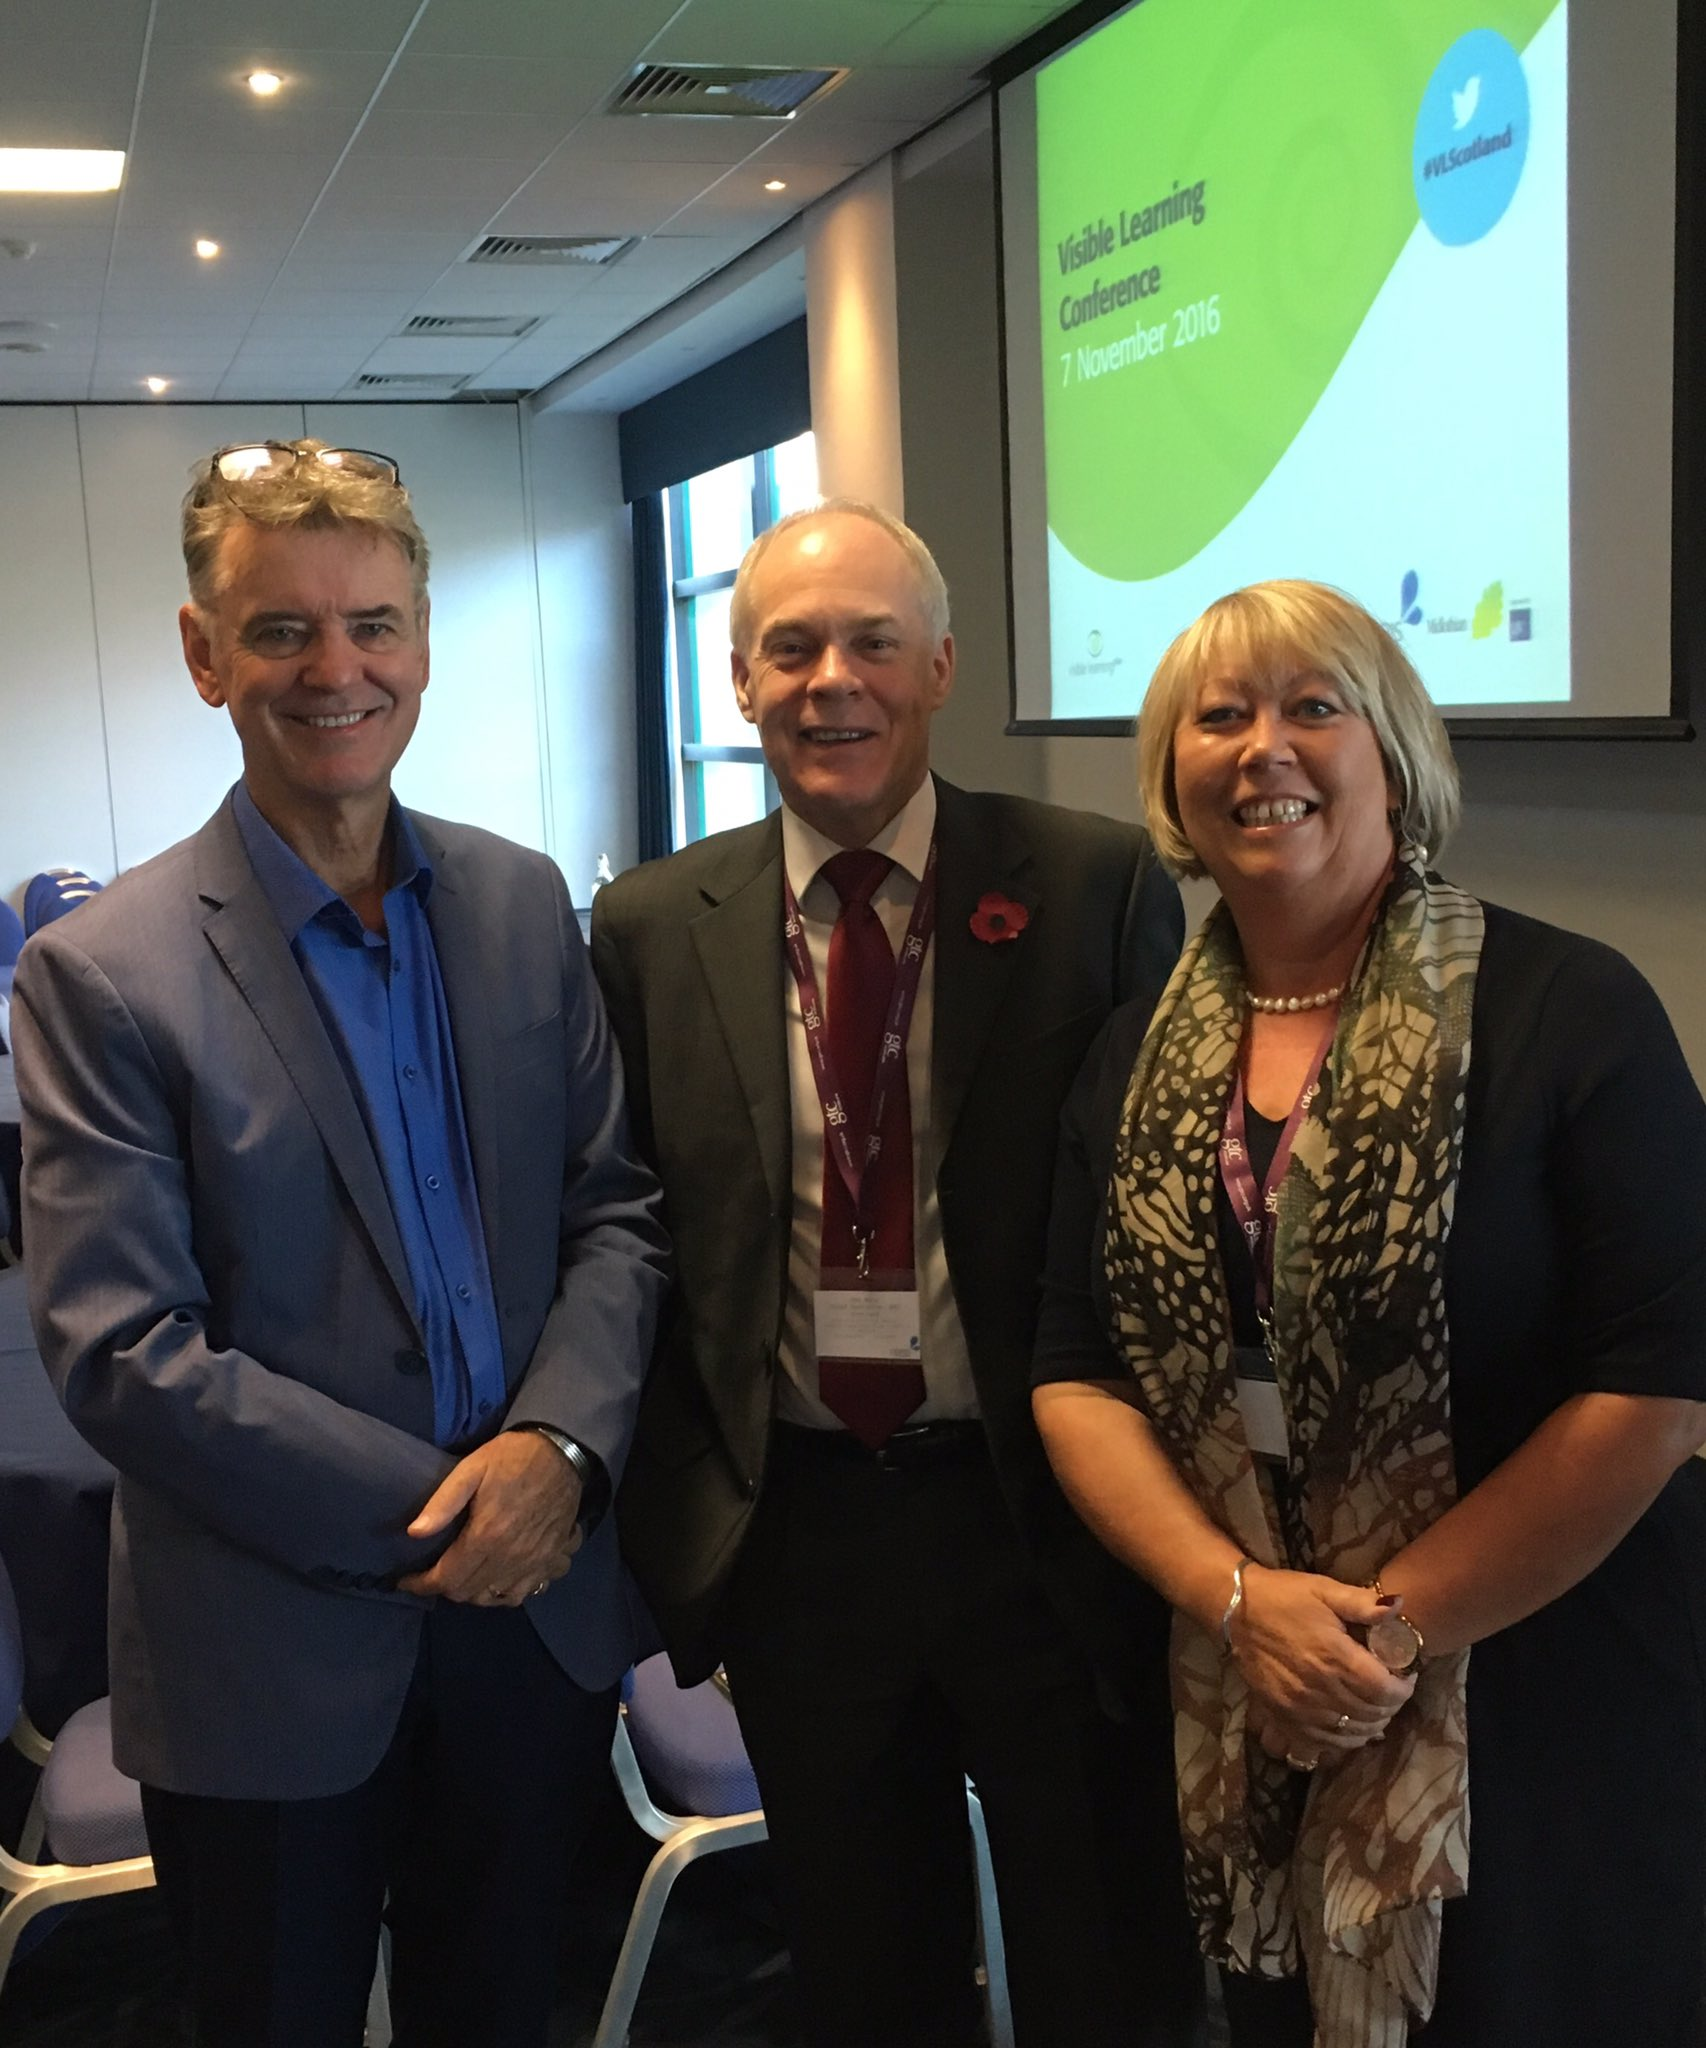 "Chatting with Prof John Hattie & Ken Muir at #VLScotland Conf - ""What really works best in our classrooms"" @RAttainment @TeamSCEL https://t.co/cCbyKLusdu"